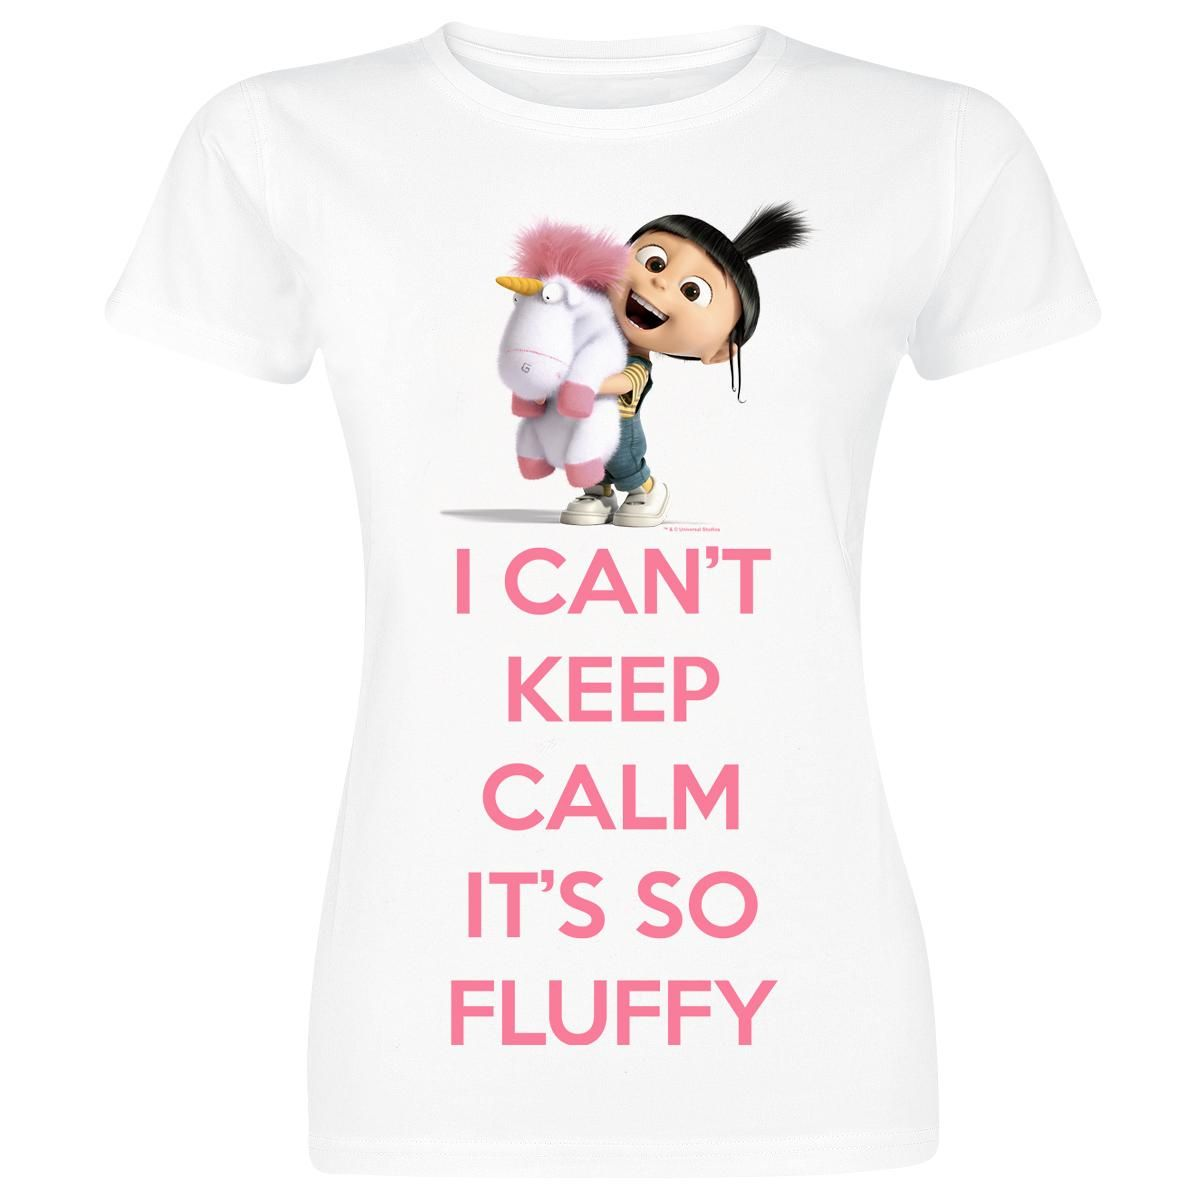 Minions  T-Shirt  »I Can't Keep Calm It's So Fluffy« | Buy now at EMP | More Fan merch  T-shirts  available online ✓ Unbeatable prices!